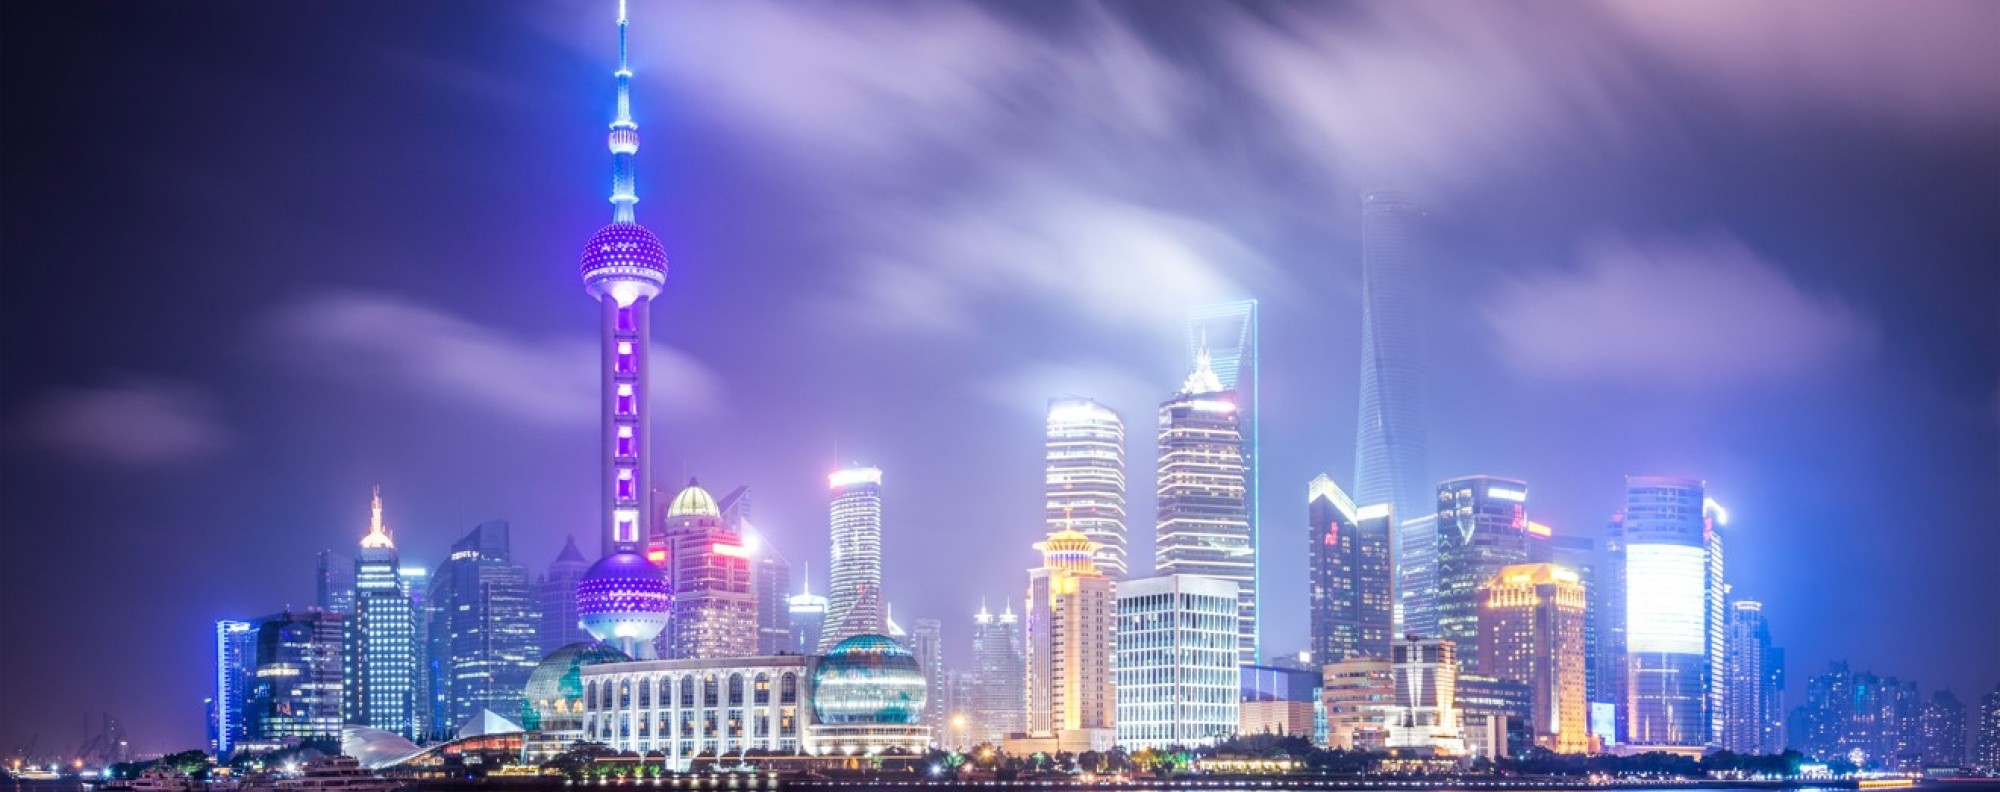 Pudong district at night, in Shanghai, China. Picture: Alamy